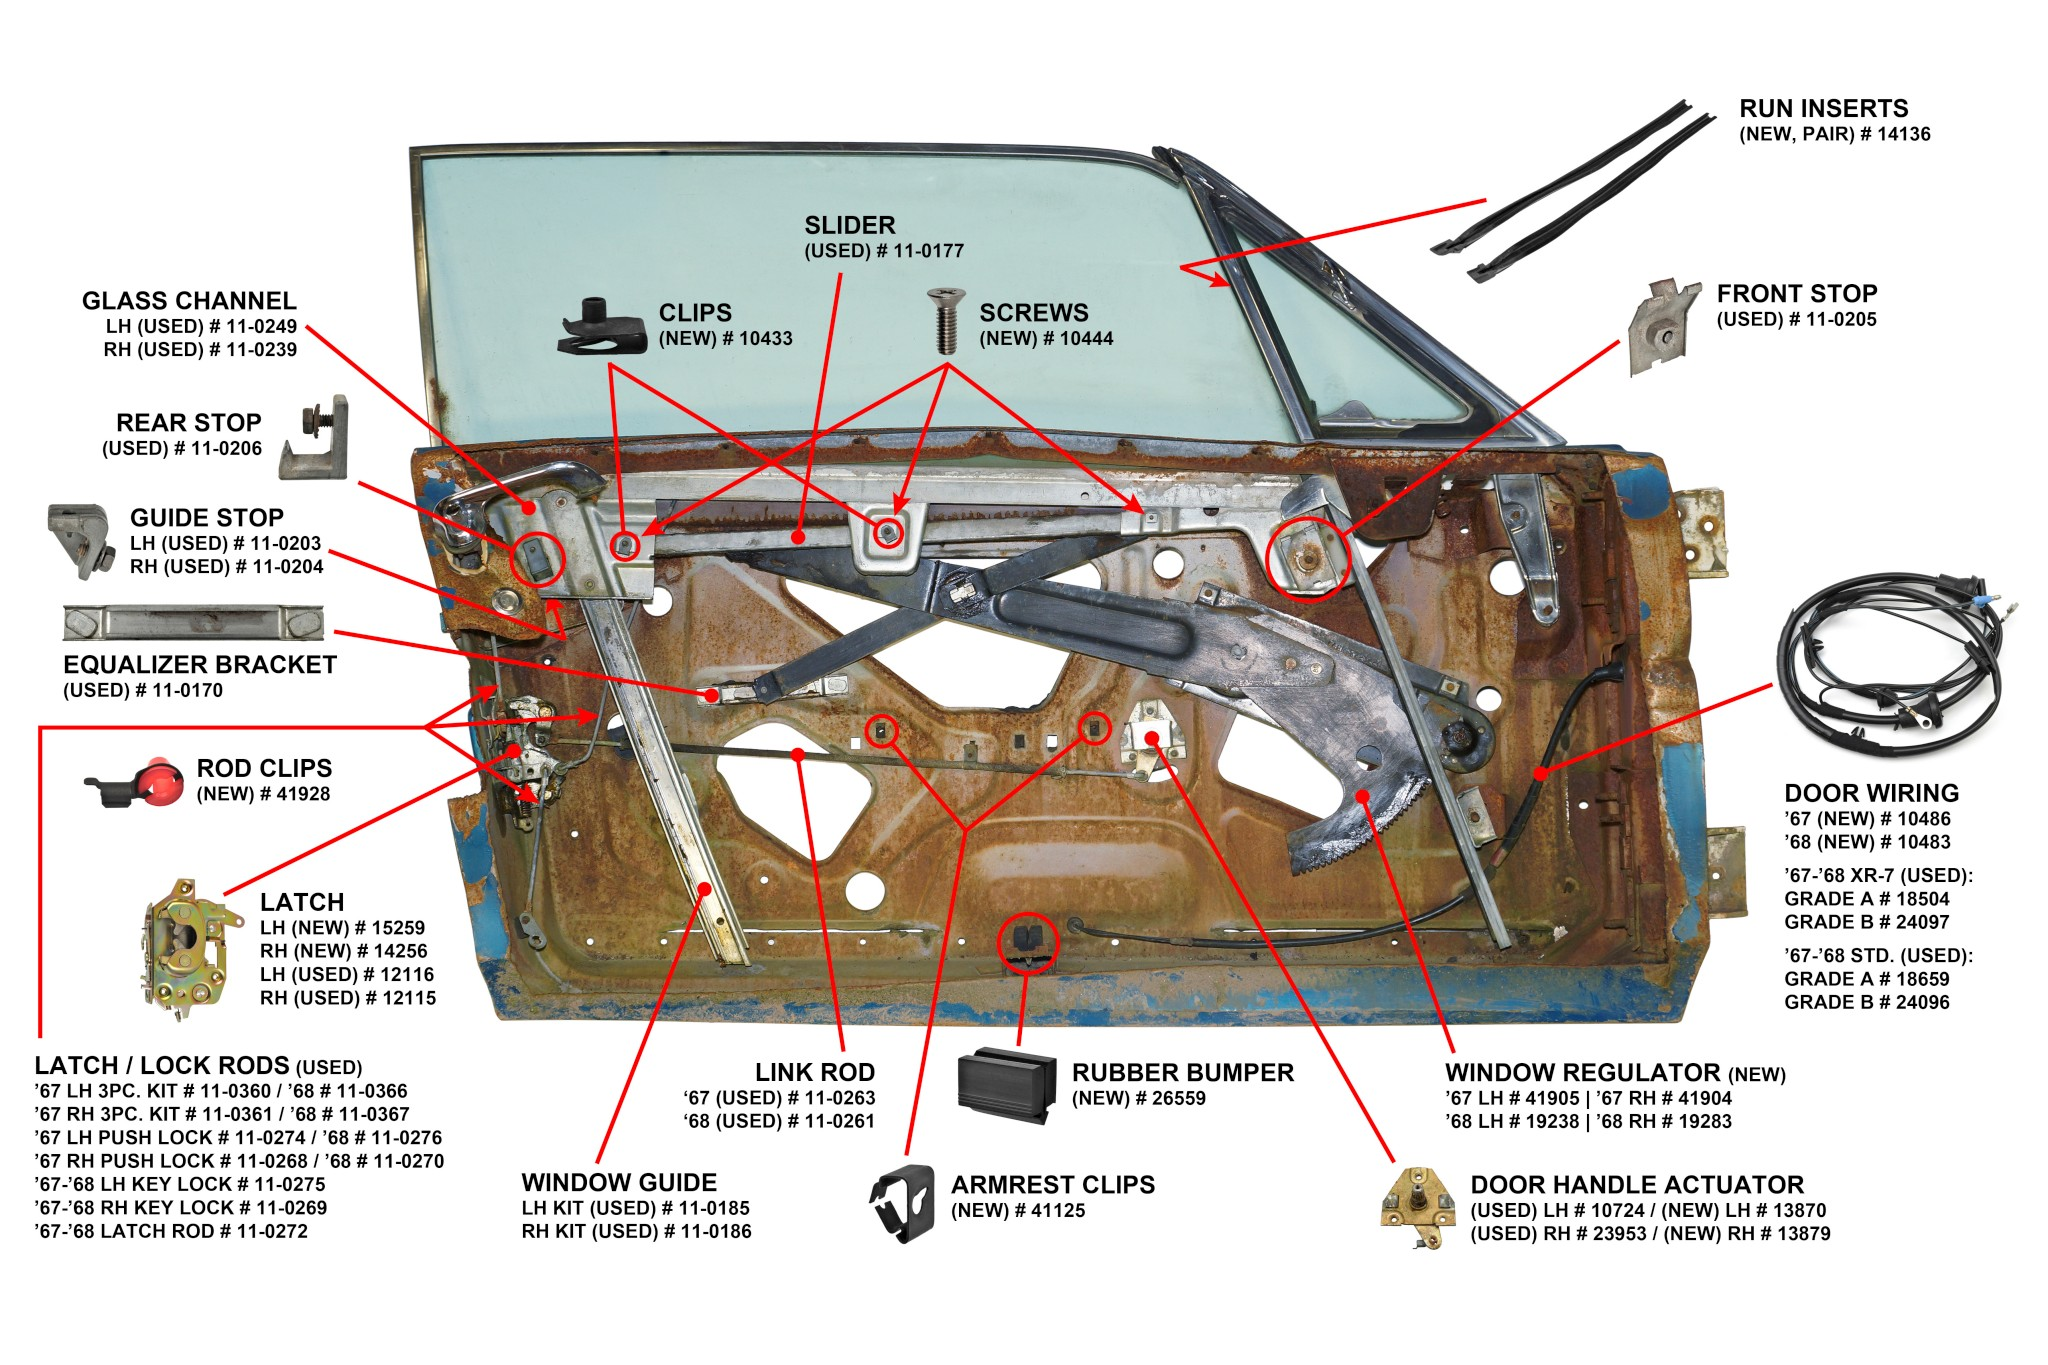 1967-68 Cougar Door Parts Diagram